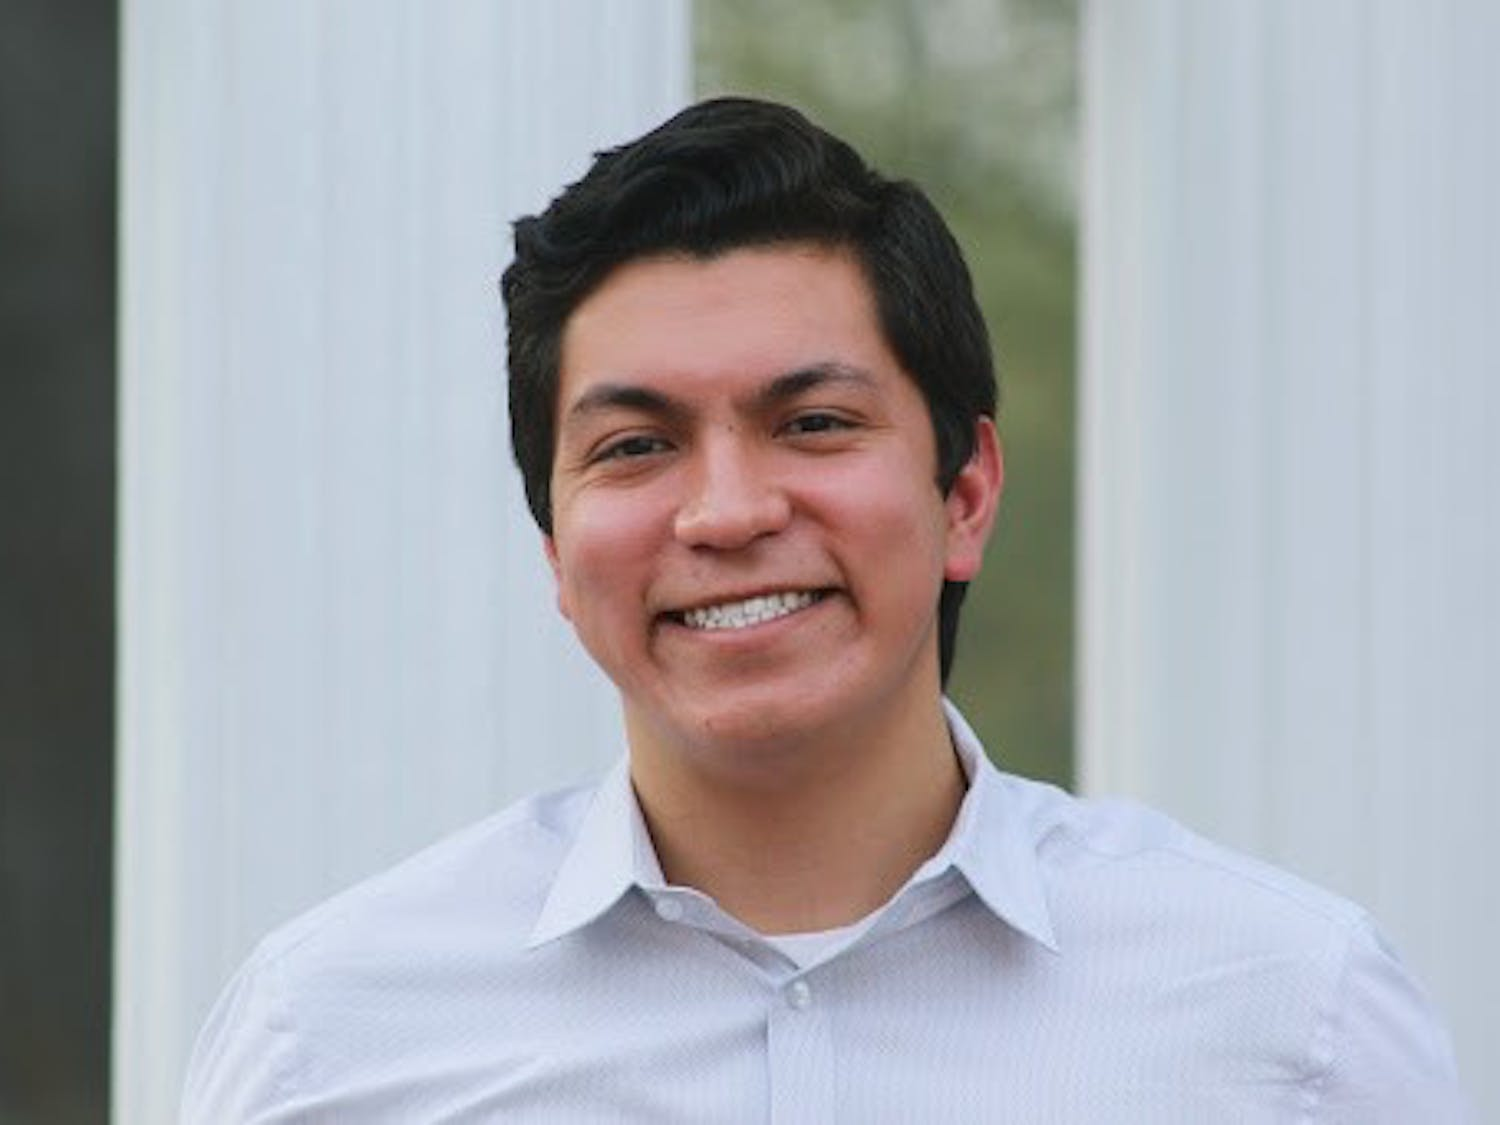 Marco Quiroz-Gutierrez is a graduating business journalism major in the Hussman School of Journalism and Media at UNC. Quiroz-Gutierrez spent four years at The Daily Tar Heel and was most recently the 2020 co-editor-in-chief with fellow senior Emily Siegmund.